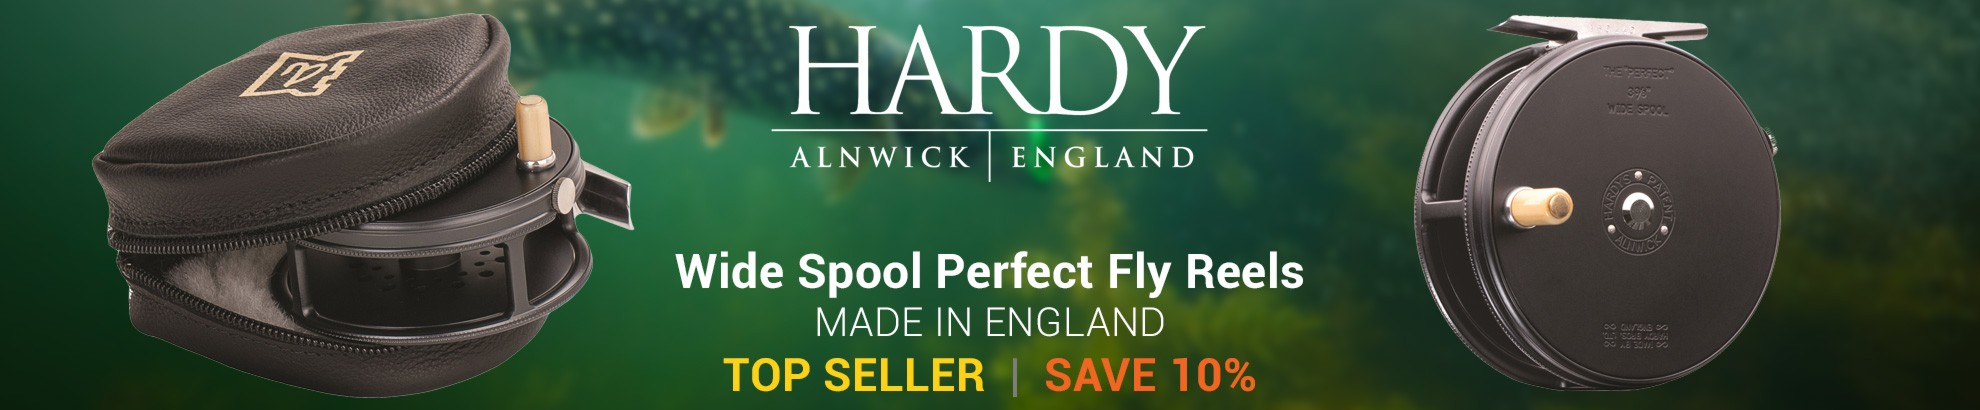 Hardy Wide Spool Perfect